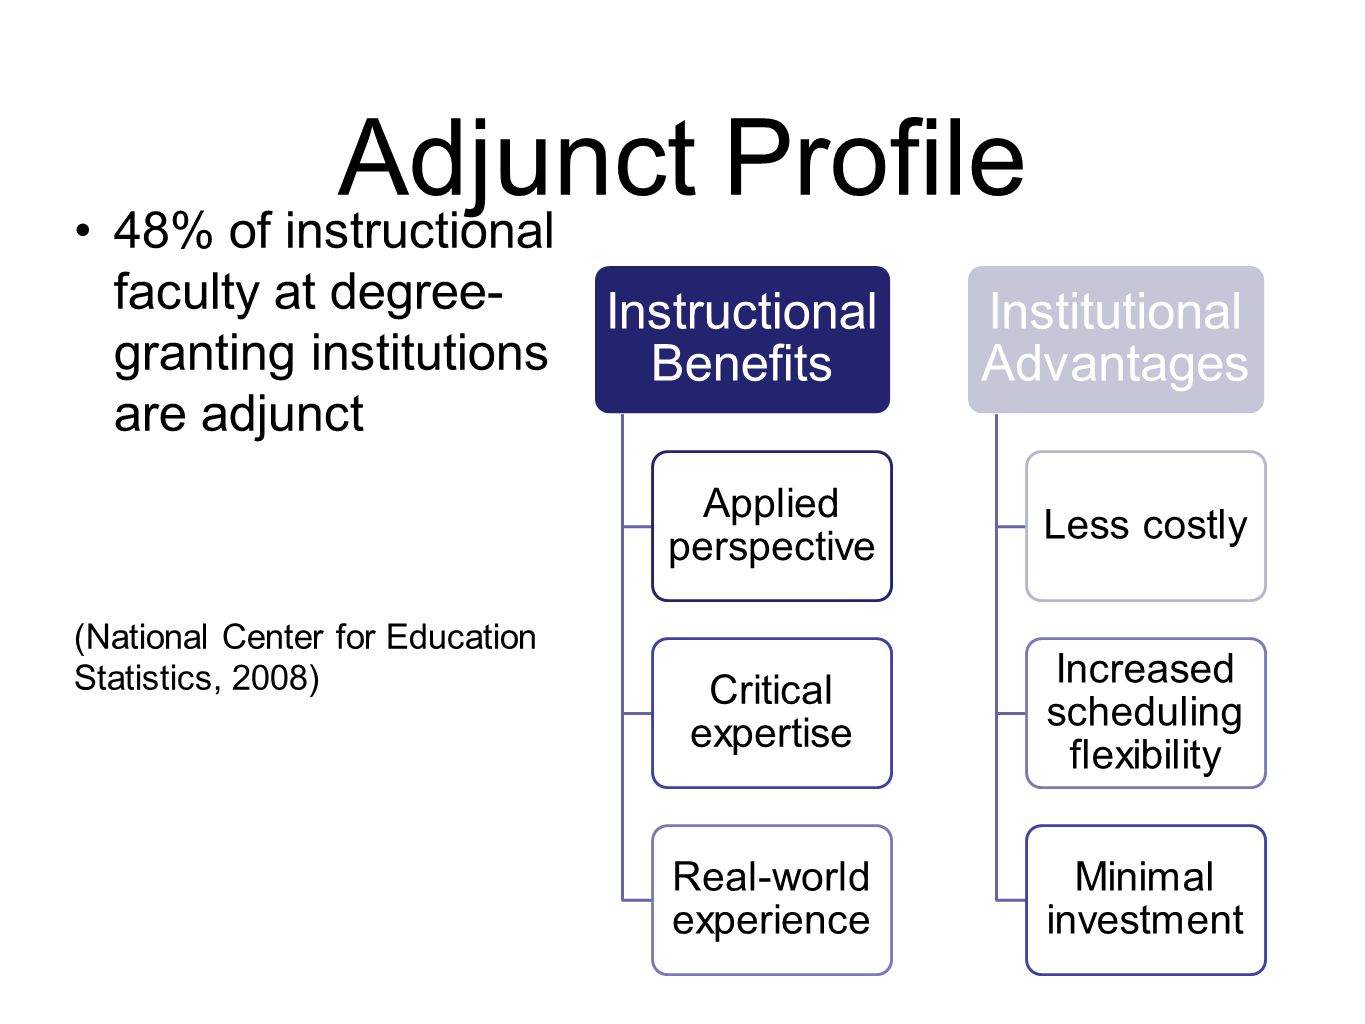 Adjunct Profile 48% of instructional faculty at degree- granting institutions are adjunct (National Center for Education Statistics, 2008) Instructional Benefits Applied perspective Critical expertise Real-world experience Institutional Advantages Less costly Increased scheduling flexibility Minimal investment